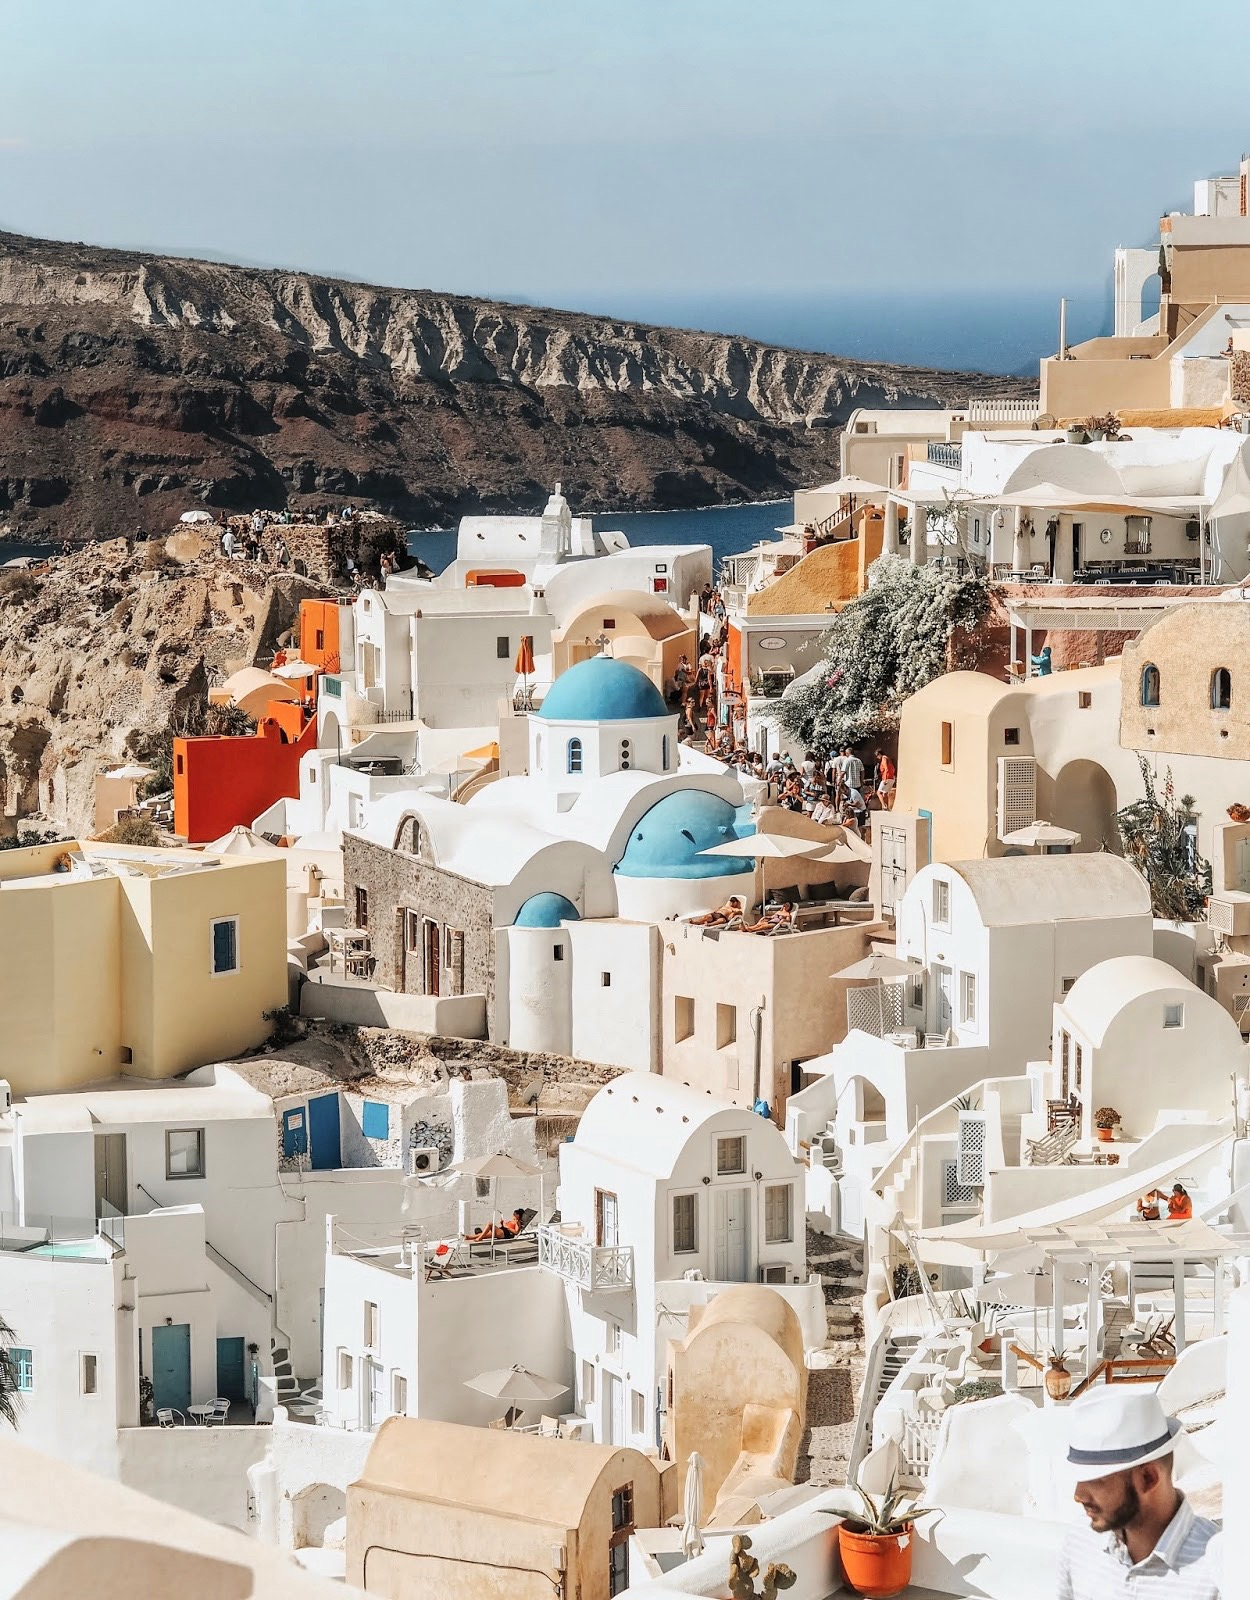 White roofs and buildings from Santorini in Greece